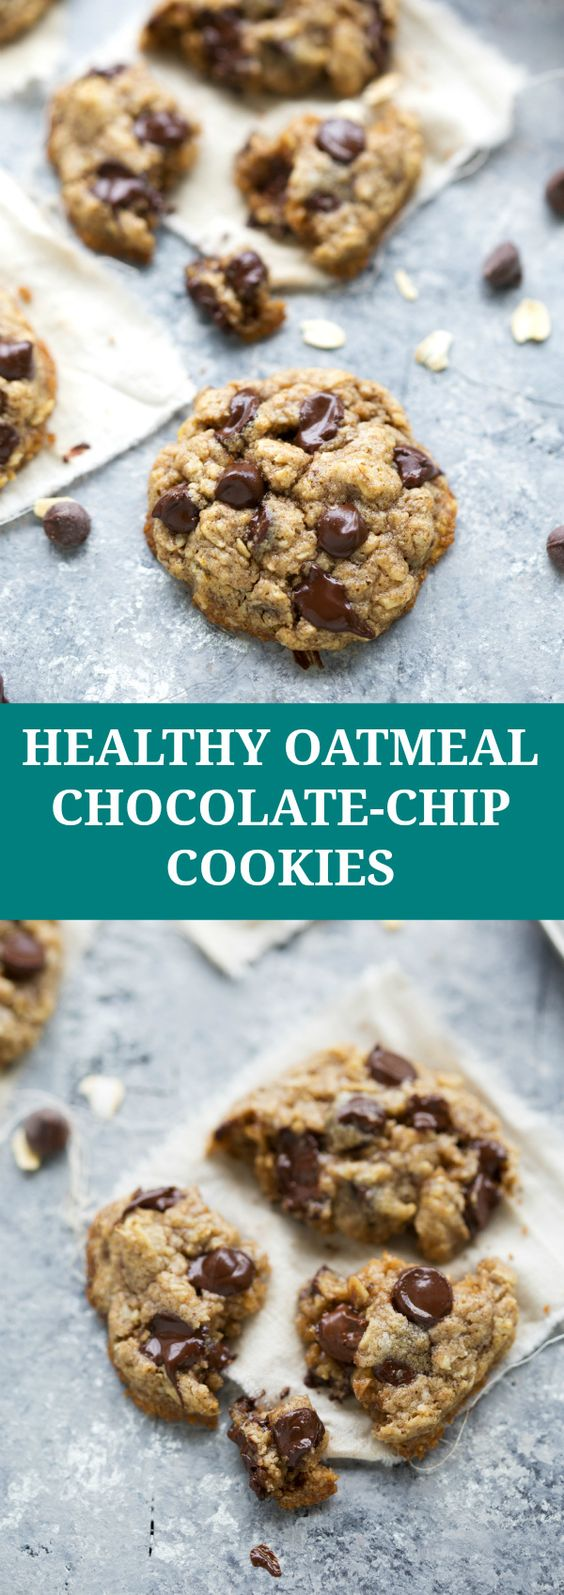 The BEST healthier oatmeal chocolate-chip cookies NO flour or butter PLUS only 4 tablespoons sugar in the whole recipe!,